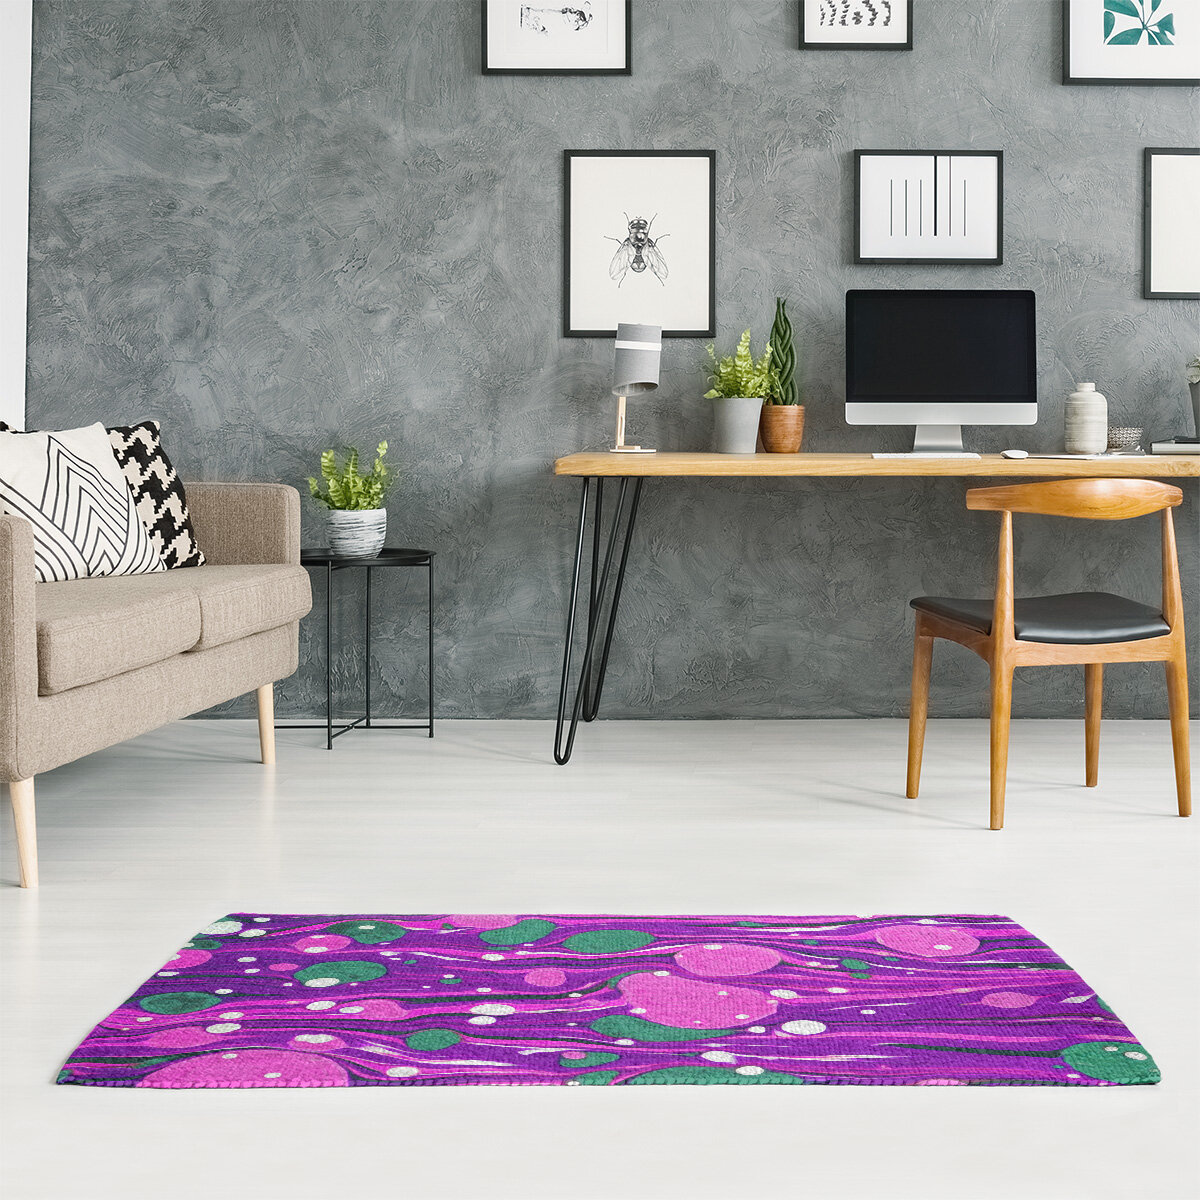 East Urban Home Mcguigan Paint Swirls Purple Area Rug Wayfair